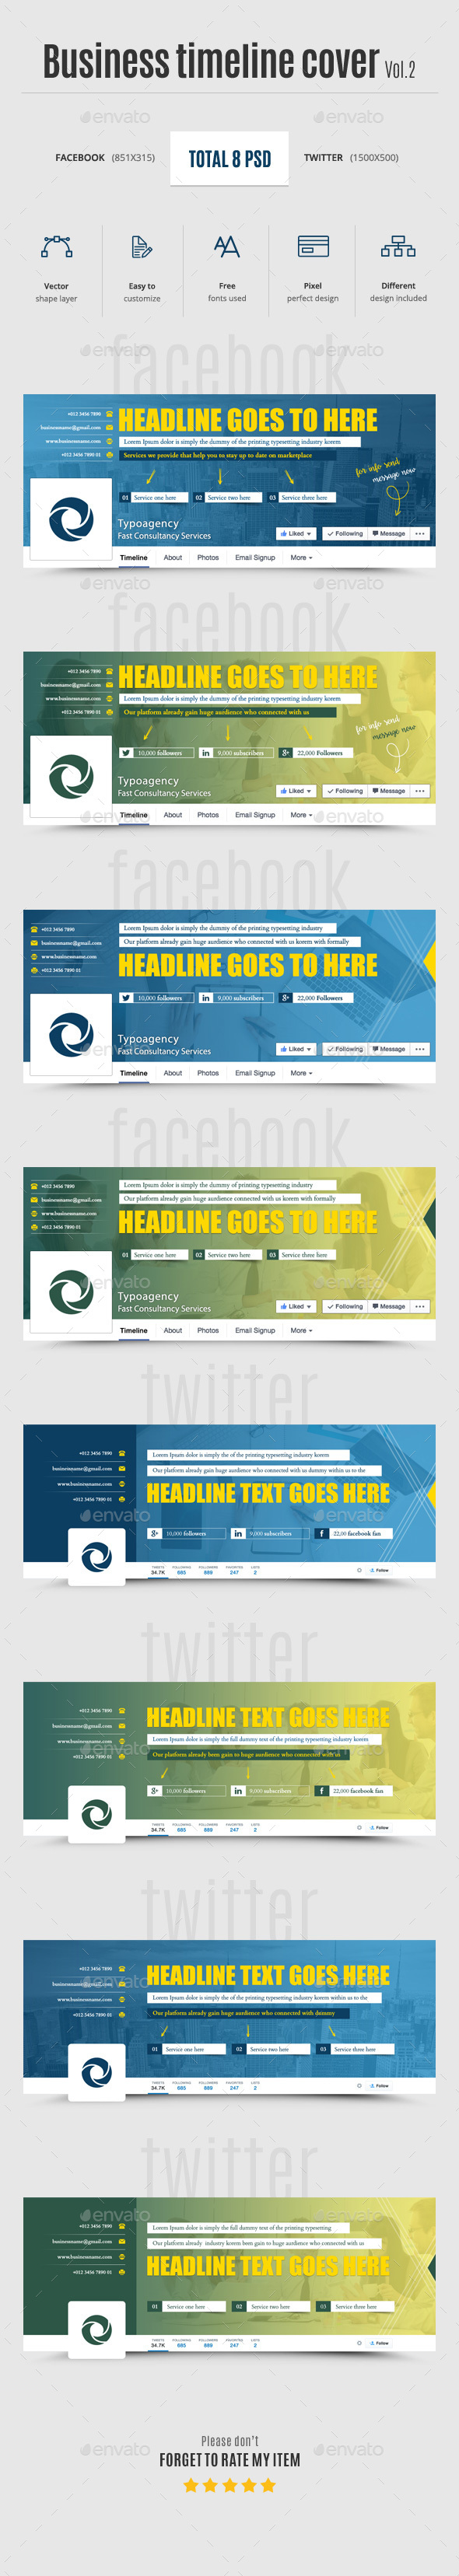 Business Timeline Cover Vol.2 - Social Media Web Elements